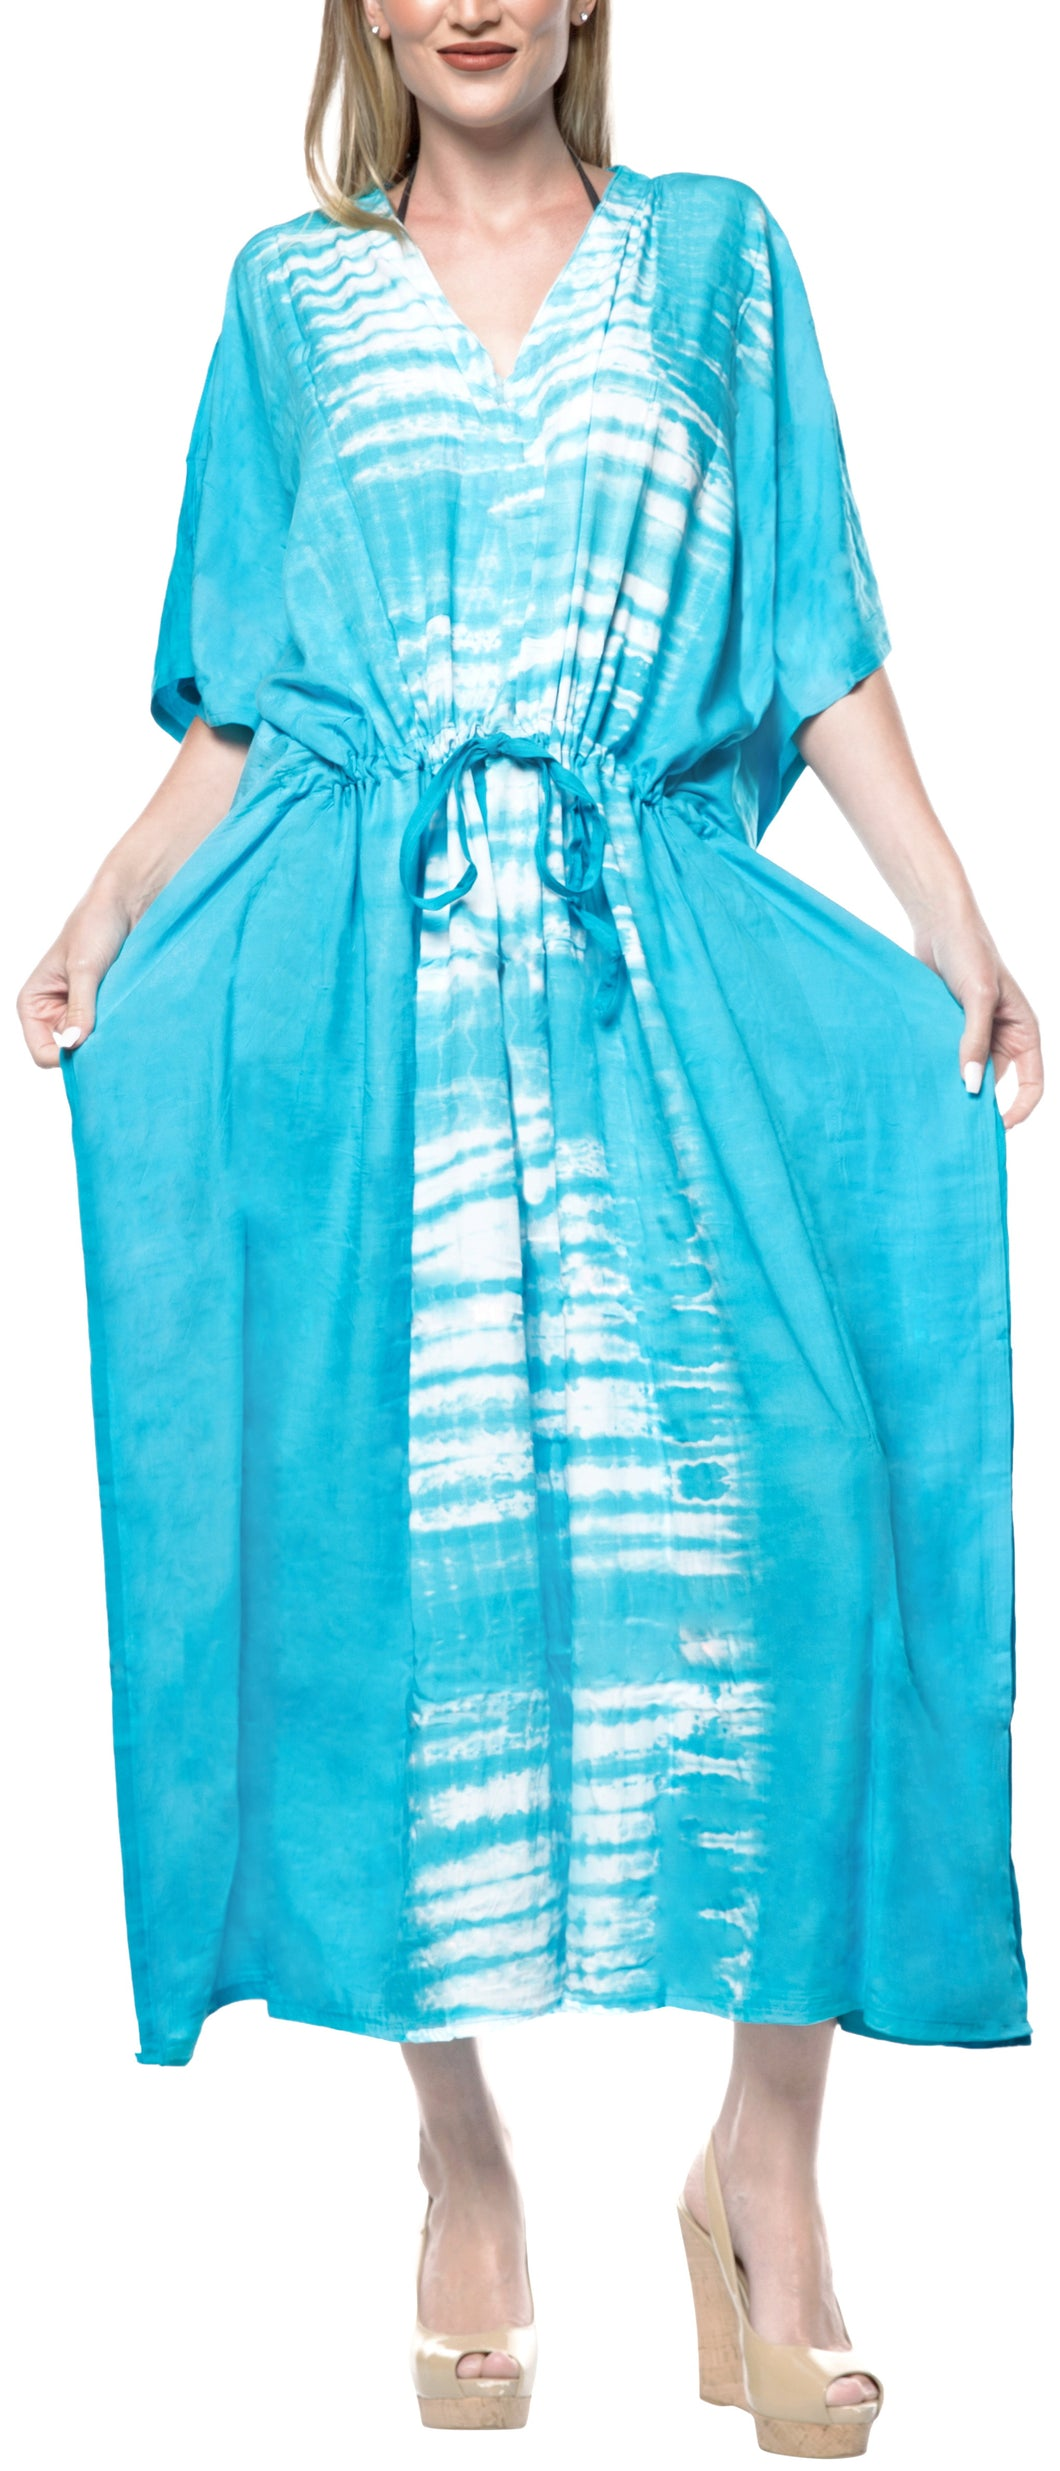 la-leela-lounge-rayon-tie_dye-long-caftan-dress-women-blue_1385-osfm-14-32w-l-5x